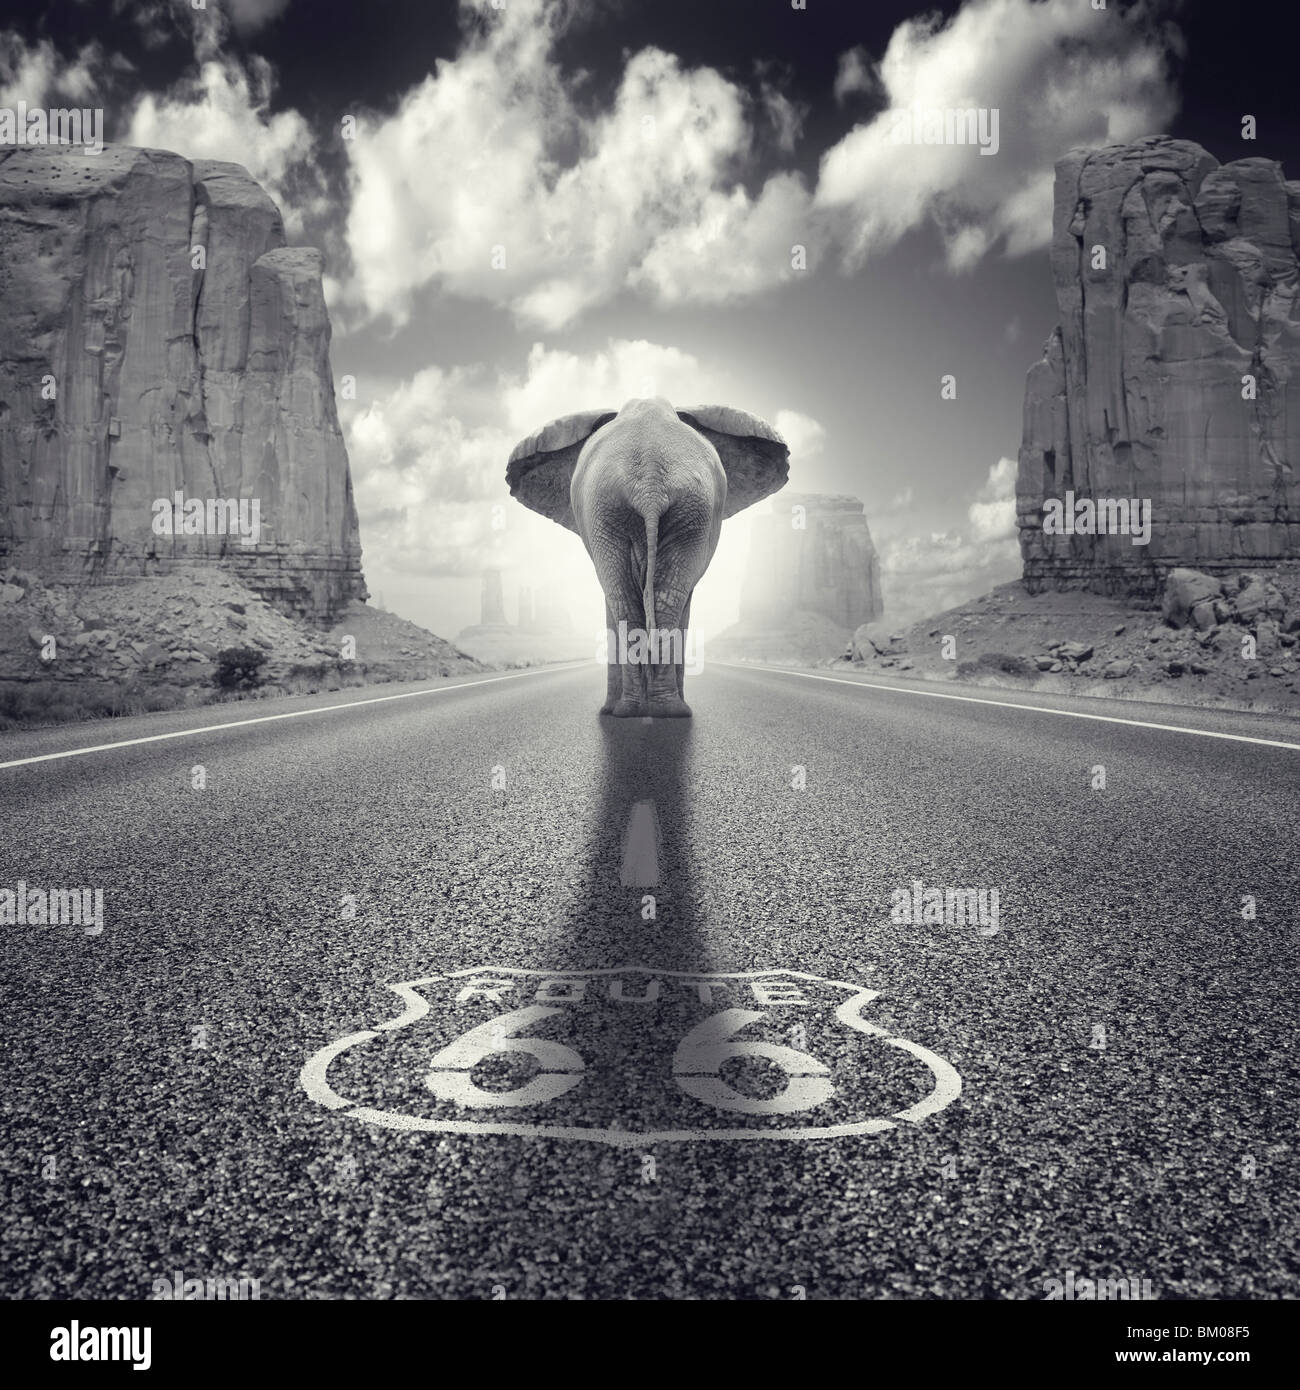 An elephant walking along route 66 in USA monument valley - Stock Image